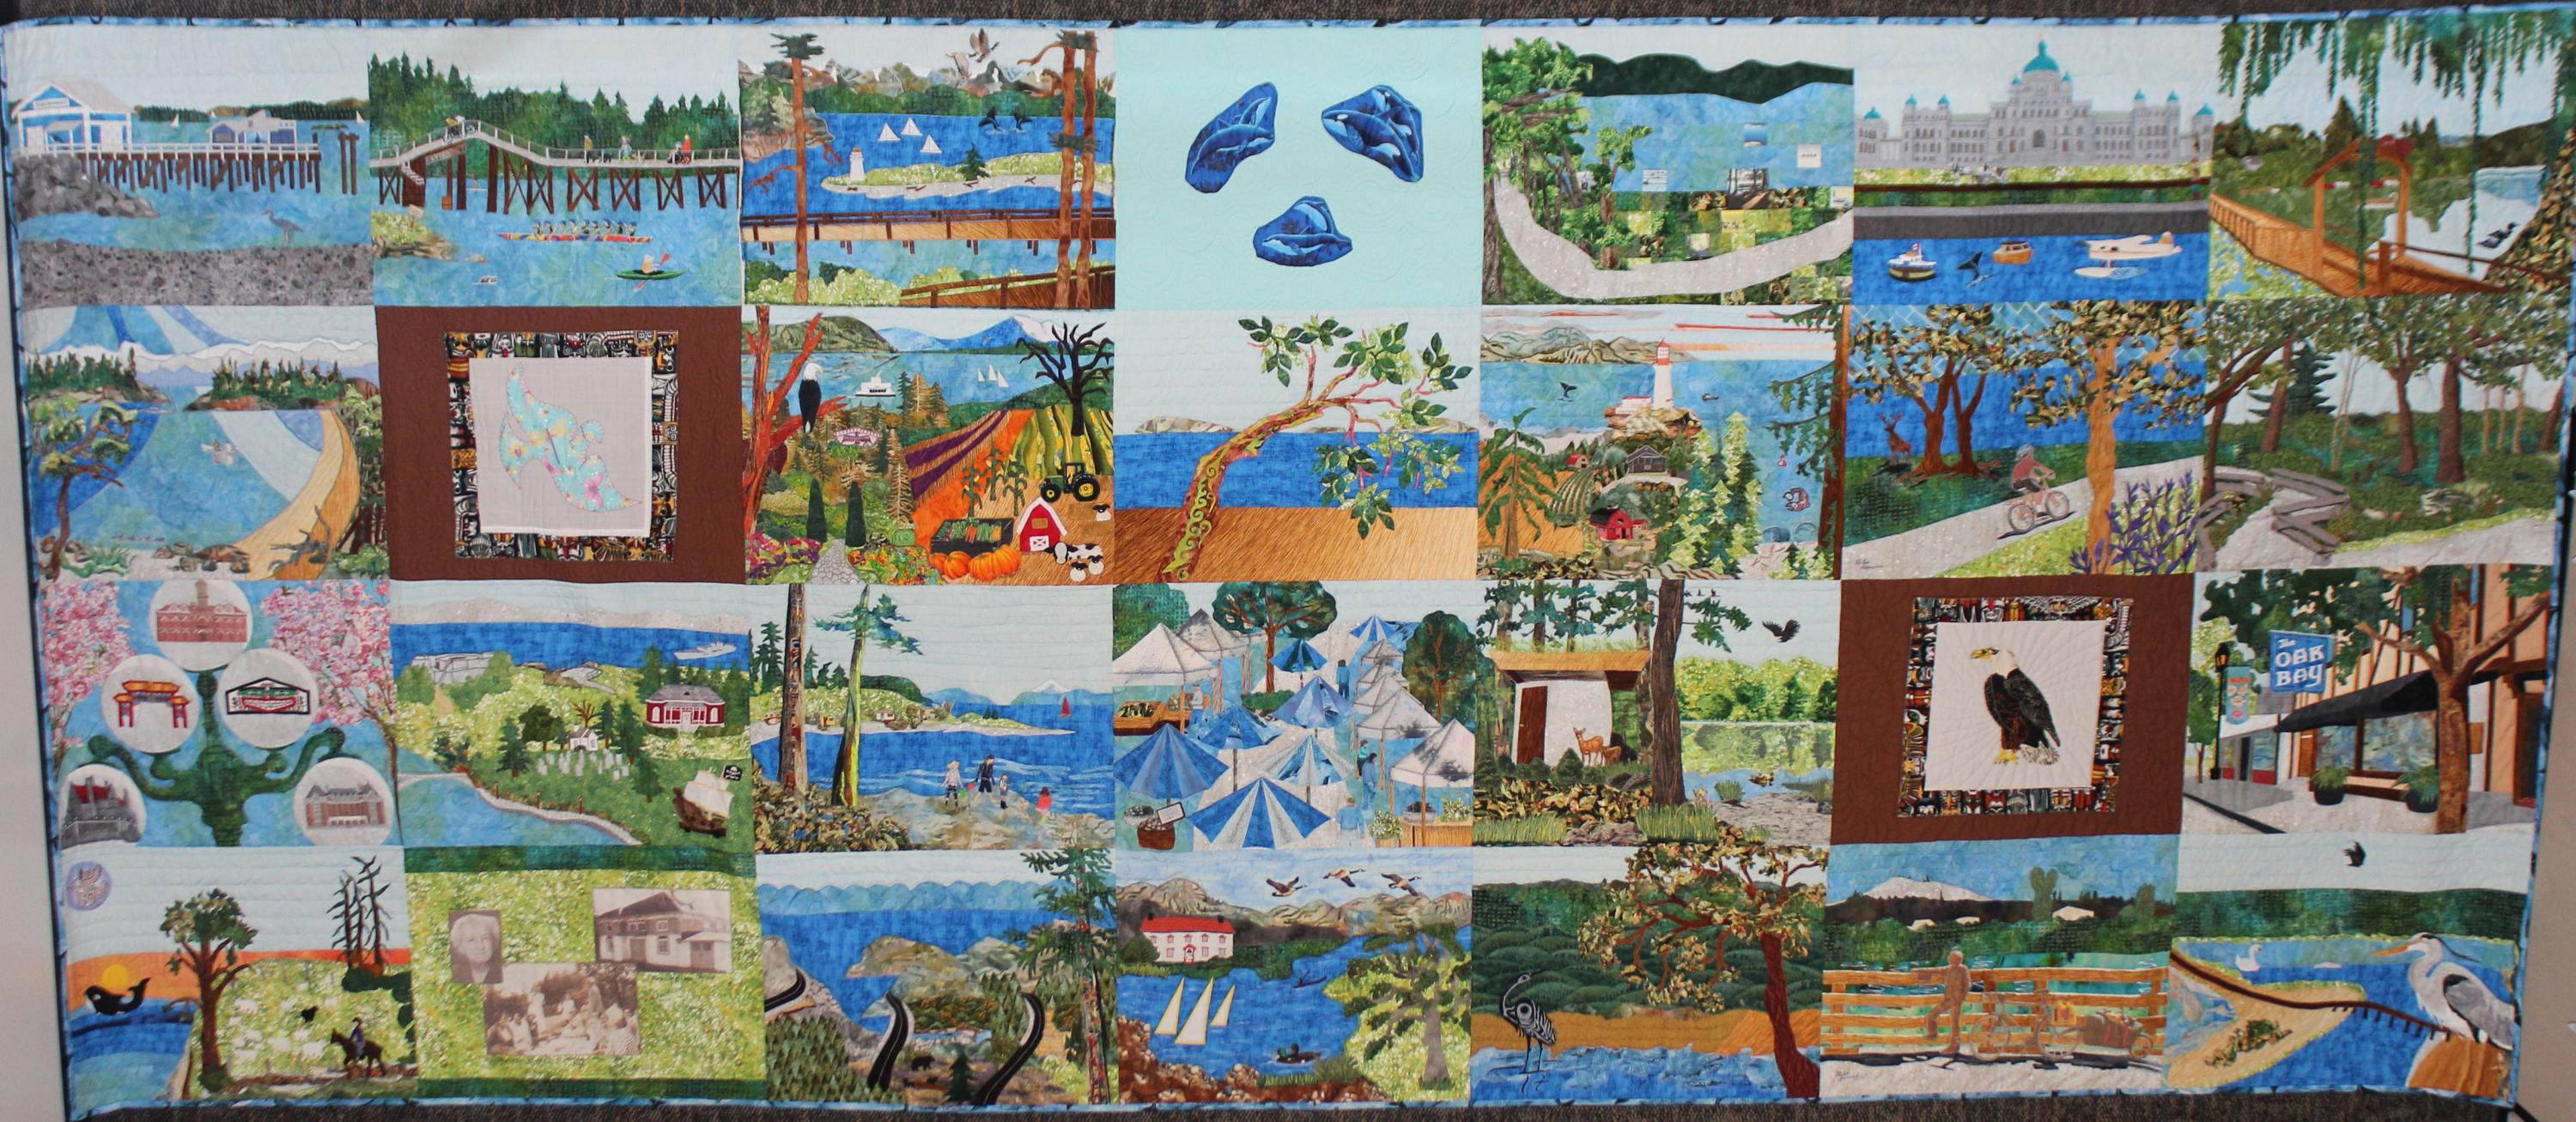 CDR Quilt Image